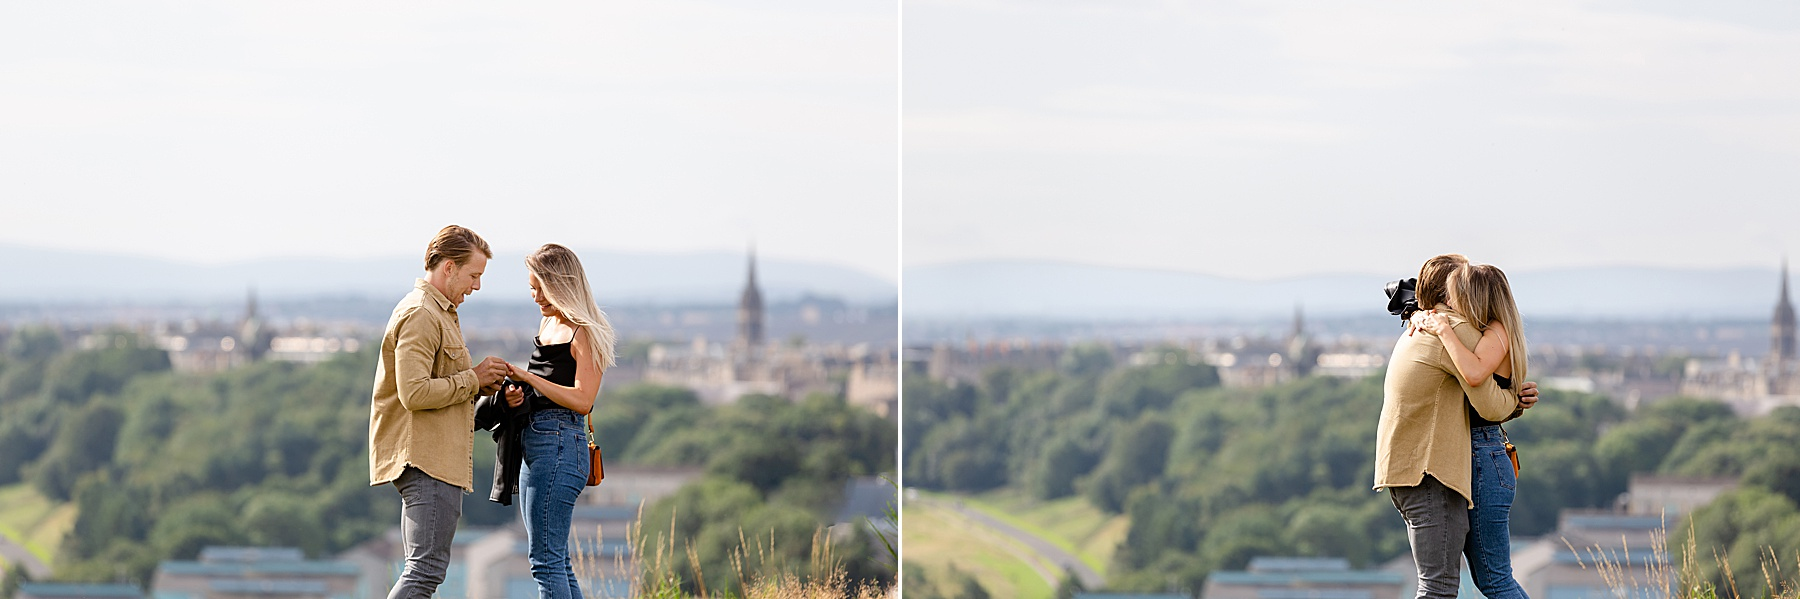 Edinburgh Proposal Photoshoot